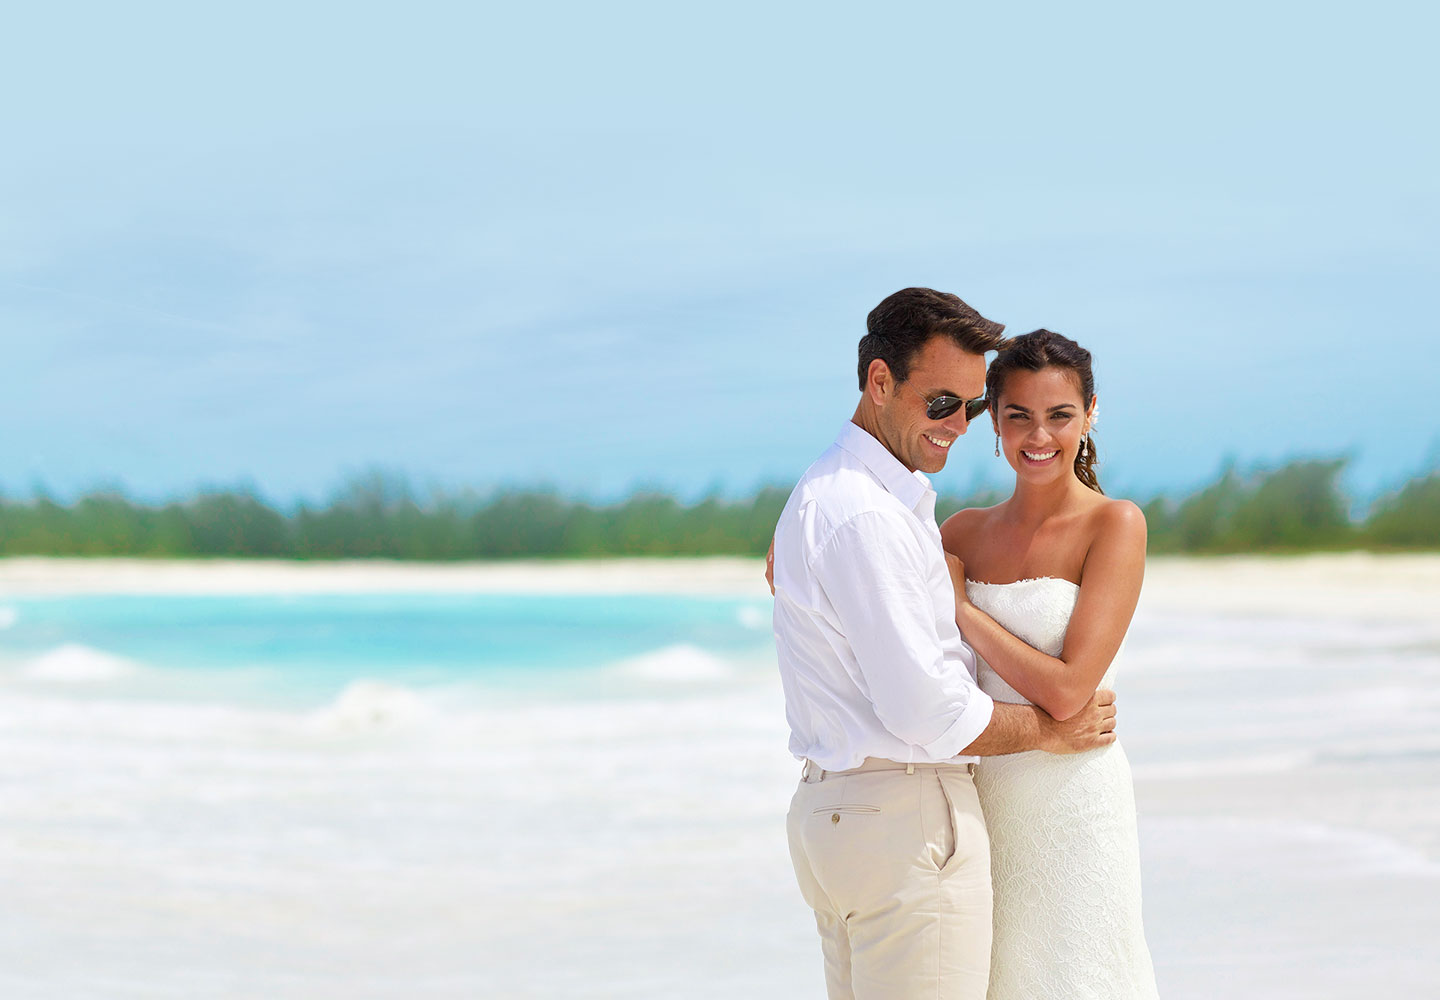 weddings wedding sandals All Inclusive Caribbean Destination Wedding Packages Locations and Planning Sandals